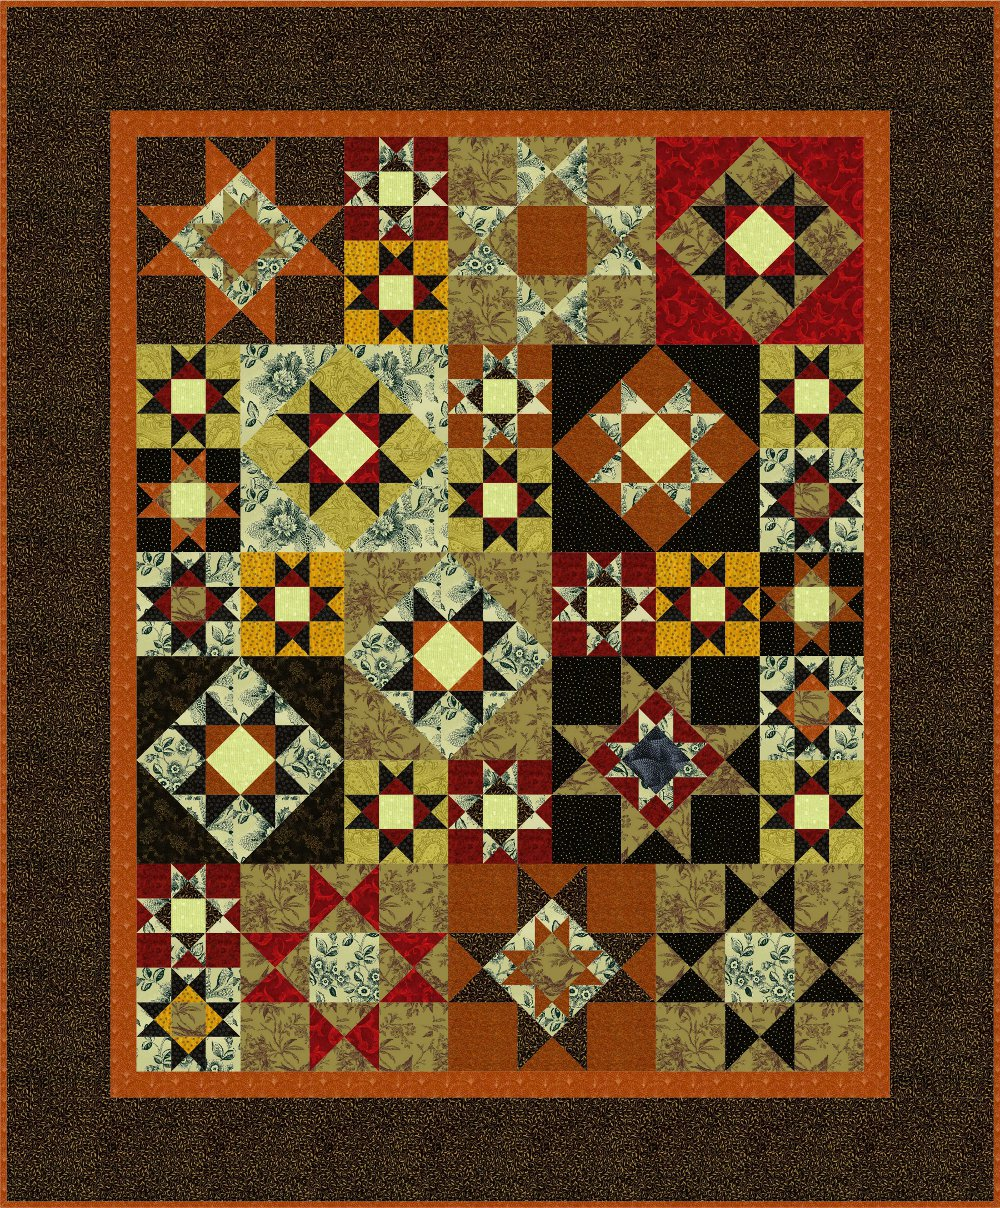 Busy Bee No 16 Quilt A Study In Ohio Stars